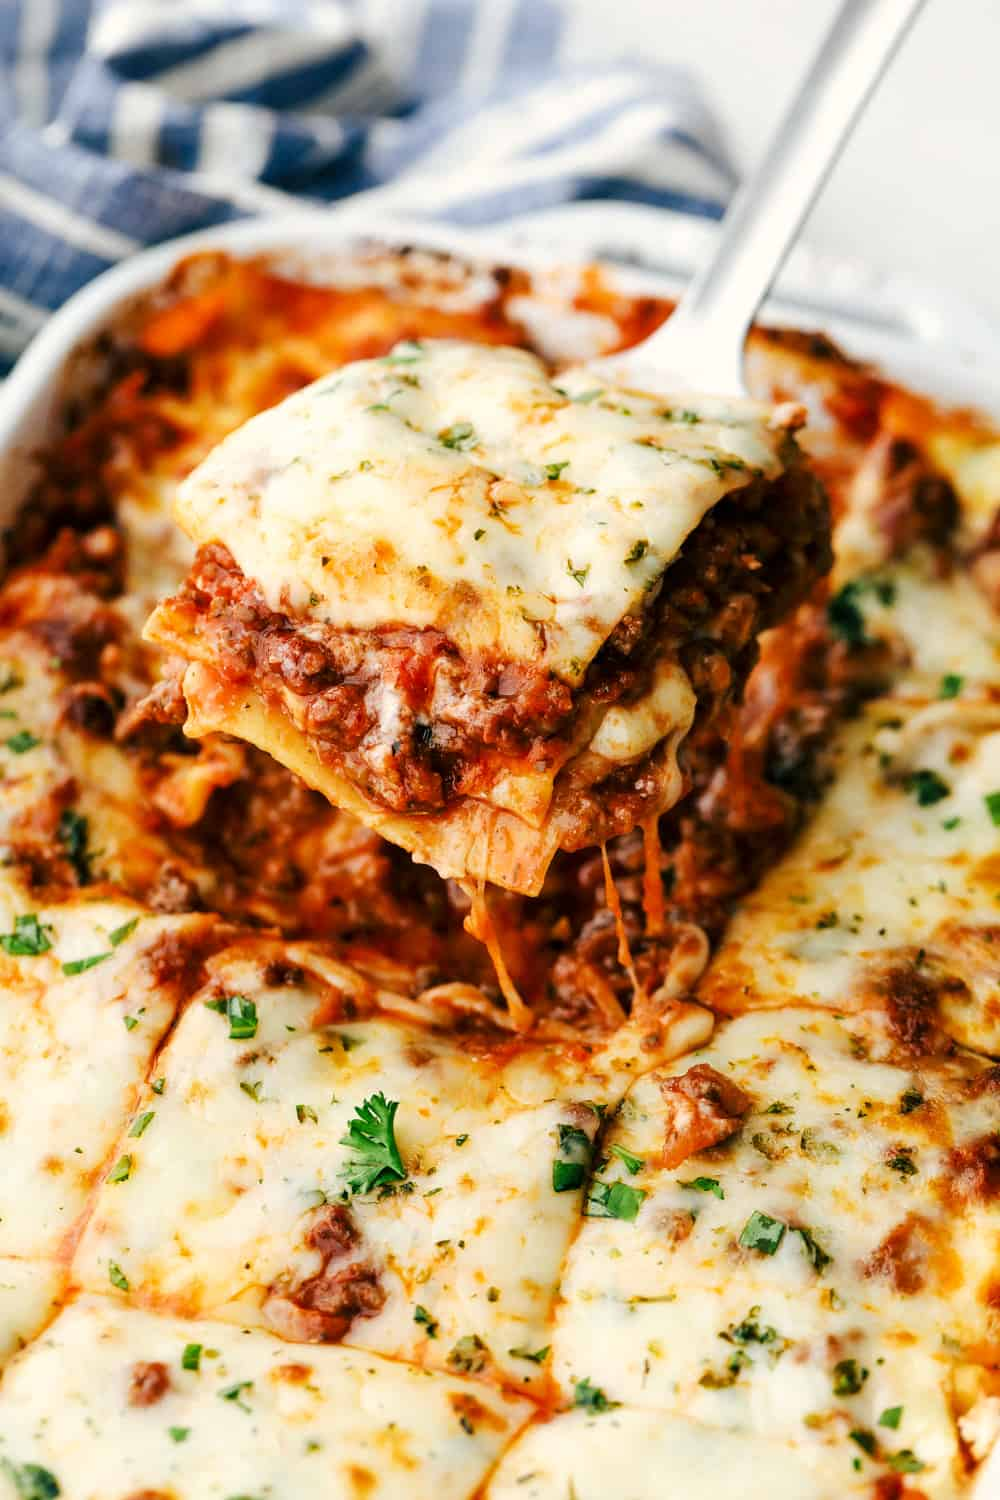 Baked lasagna in a pan